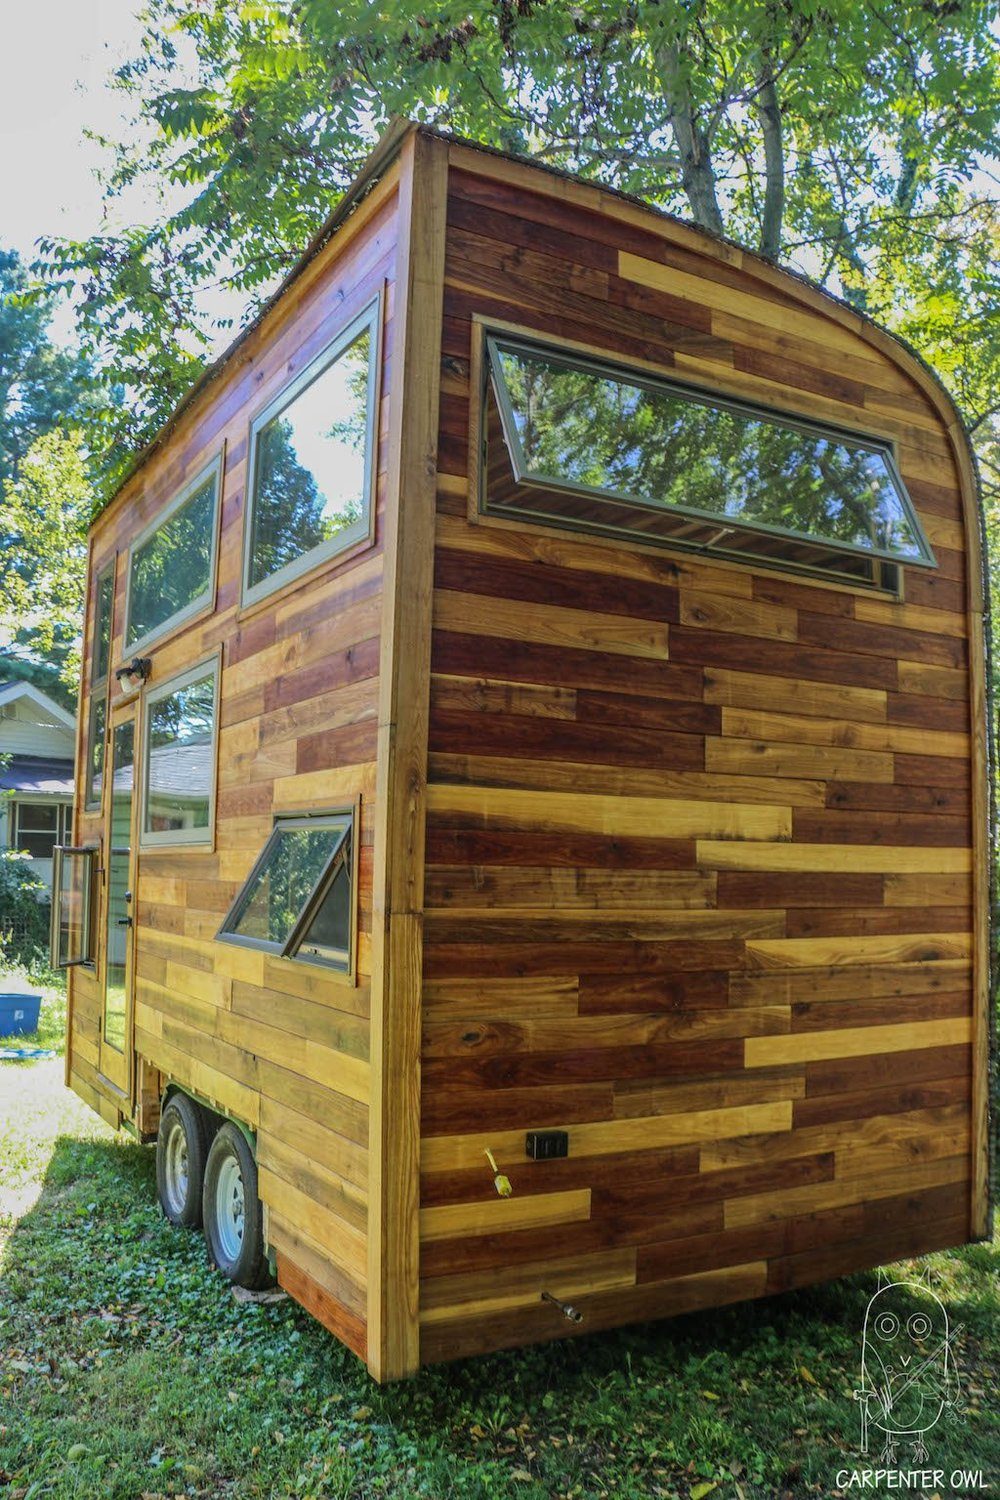 Snails Away: The Fiddlin' Snail Tiny Home - Western Face